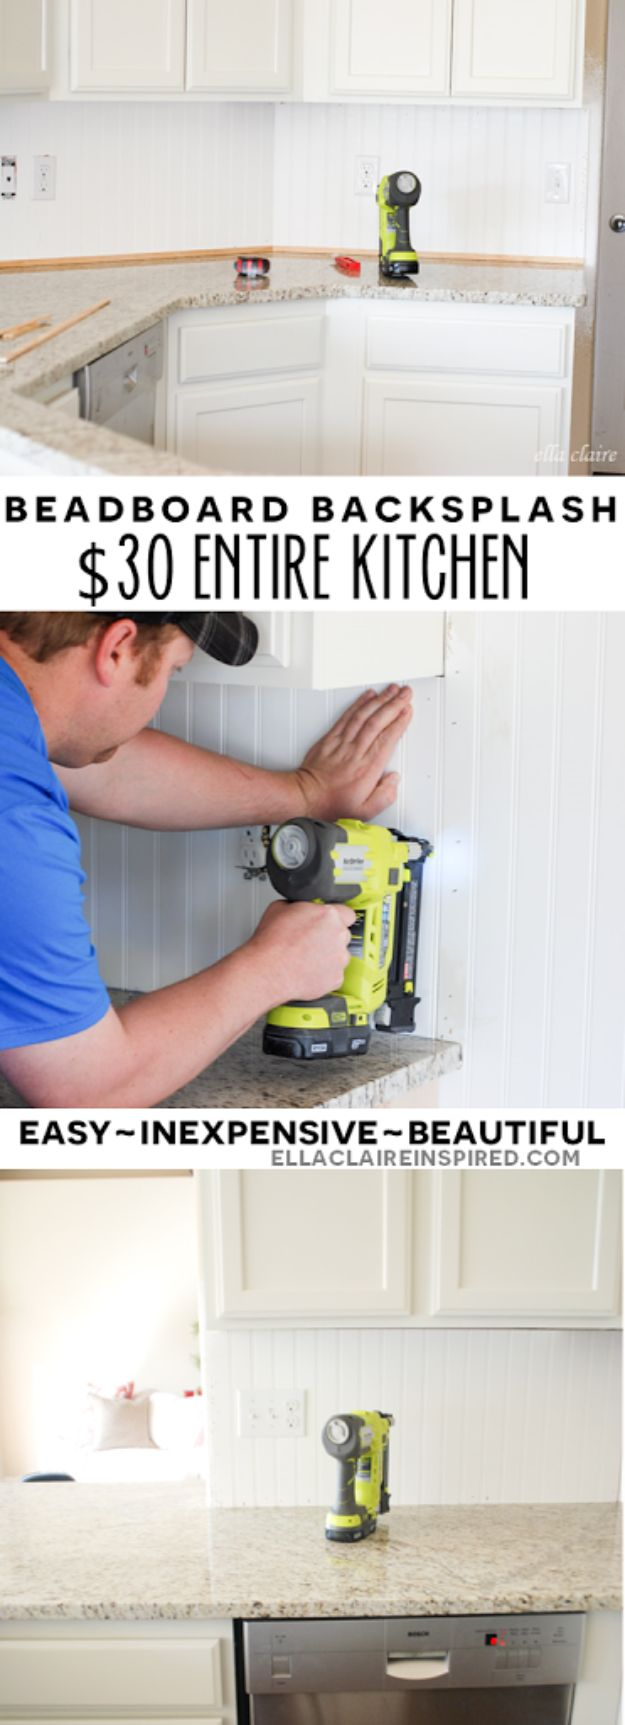 DIY Home Improvement Projects On A Budget - $30 Beadboard Kitchen Backsplash - Cool Home Improvement Hacks, Easy and Cheap Do It Yourself Tutorials for Updating and Renovating Your House - Home Decor Tips and Tricks, Remodeling and Decorating Hacks - DIY Projects and Crafts by DIY JOY http://diyjoy.com/diy-home-improvement-ideas-budget